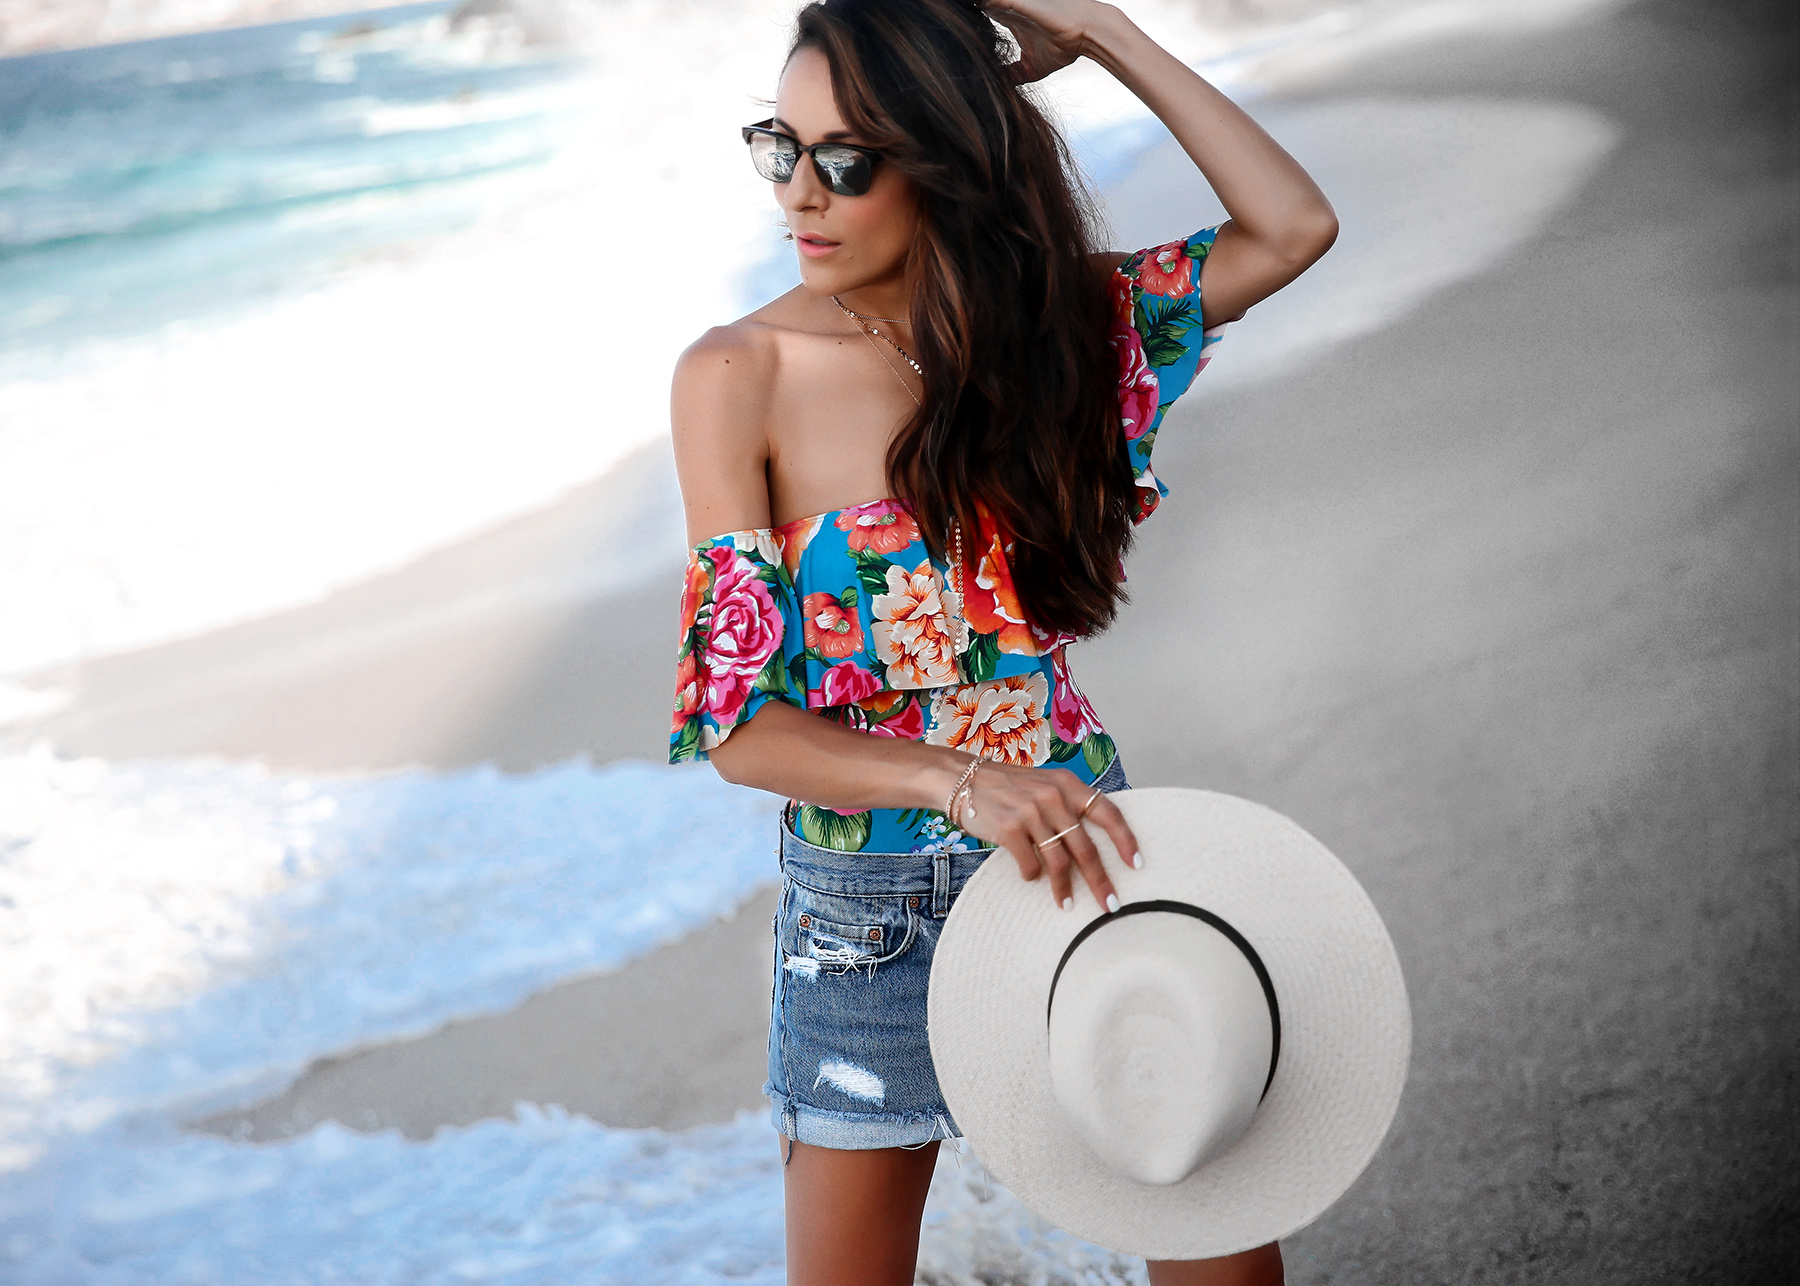 Beach Fashion Levis shorts with Floral off Shoulder Suit maui Jim sunglasses.jpg